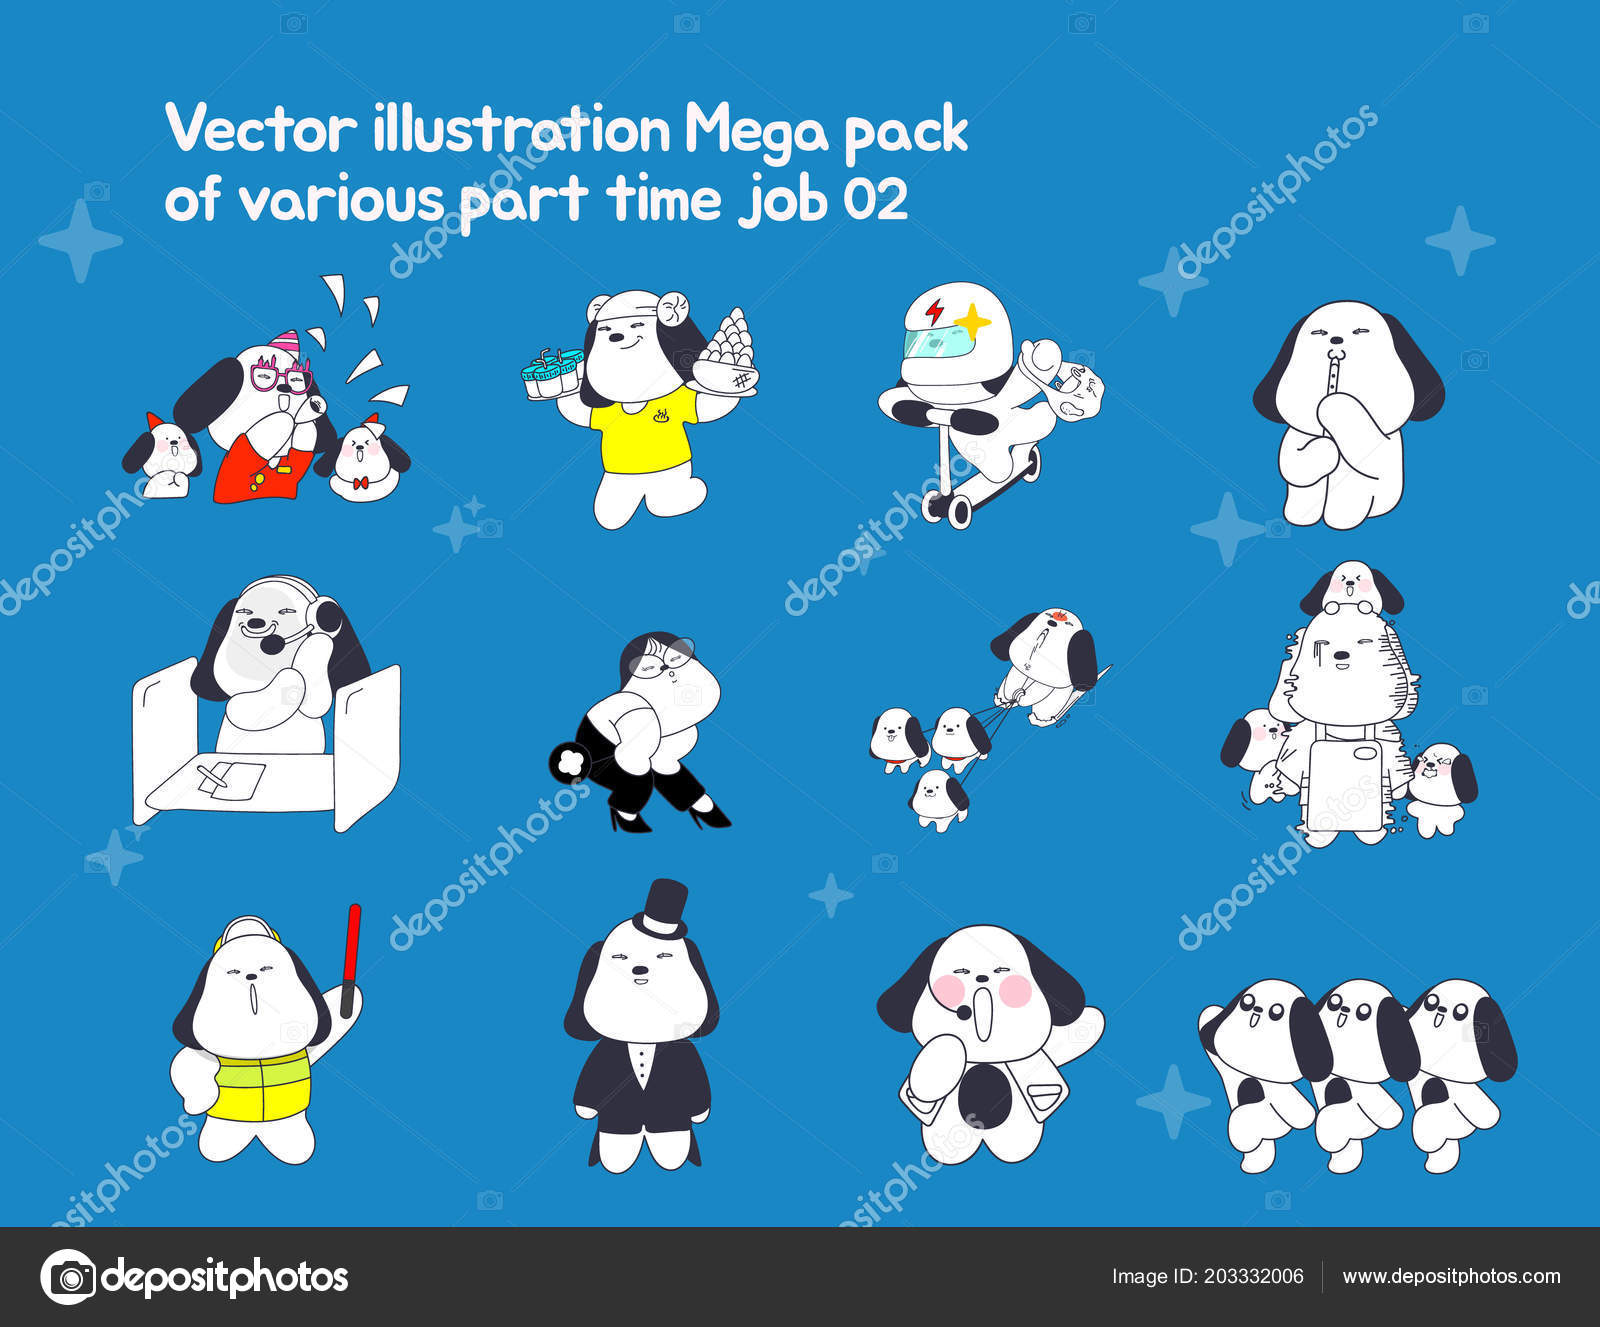 Illustration Pack Has Variety Part Time Jobs Represented Dog